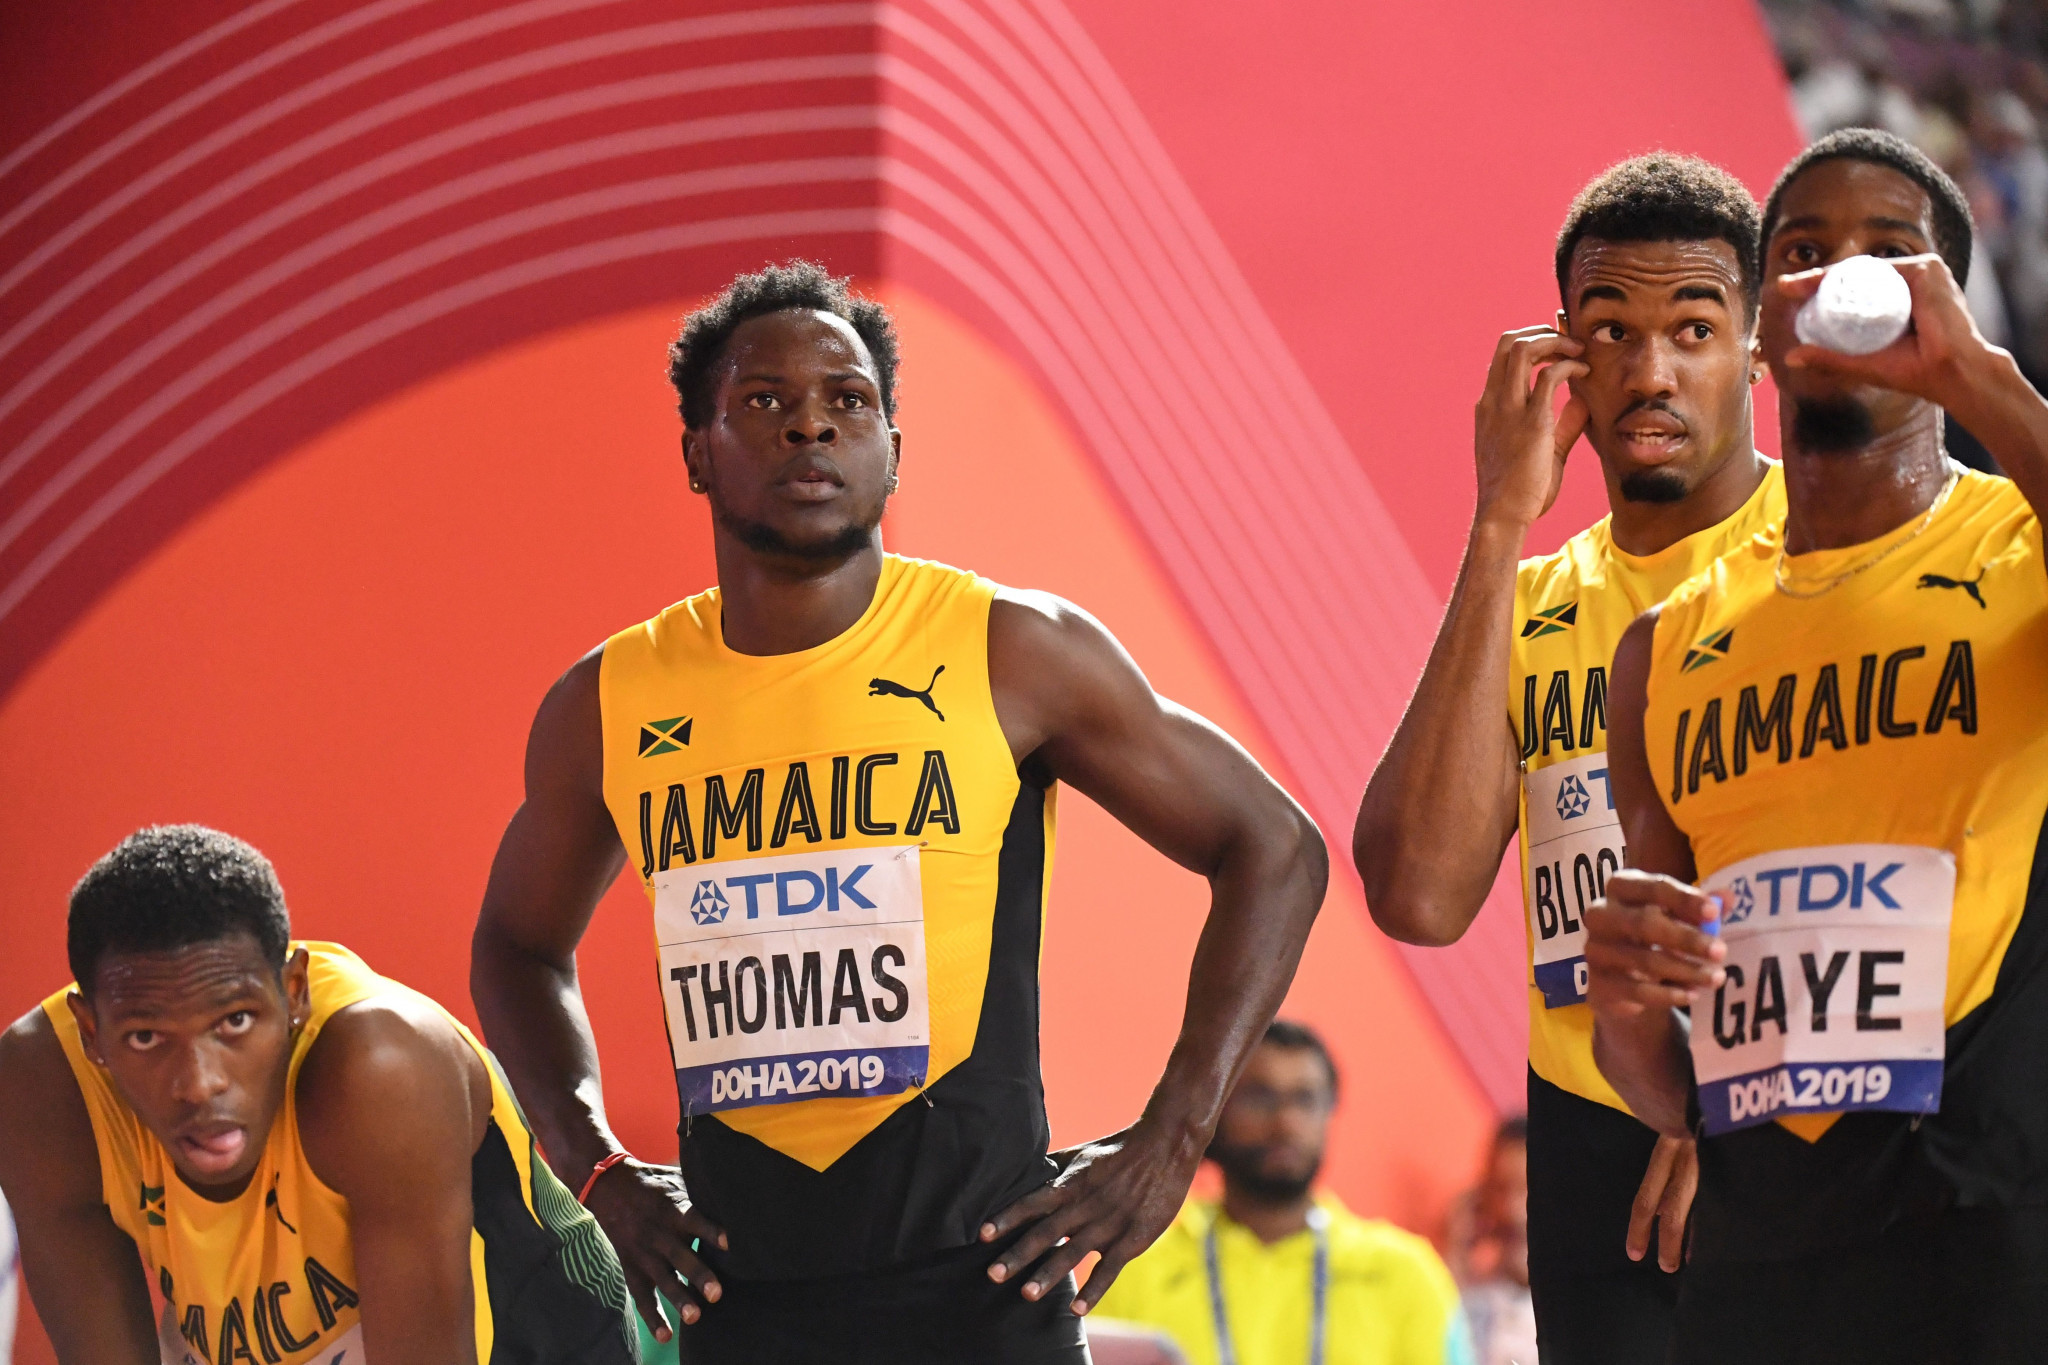 Jamaica announced its withdrawal from the World Athletics Relays recently ©Getty Images